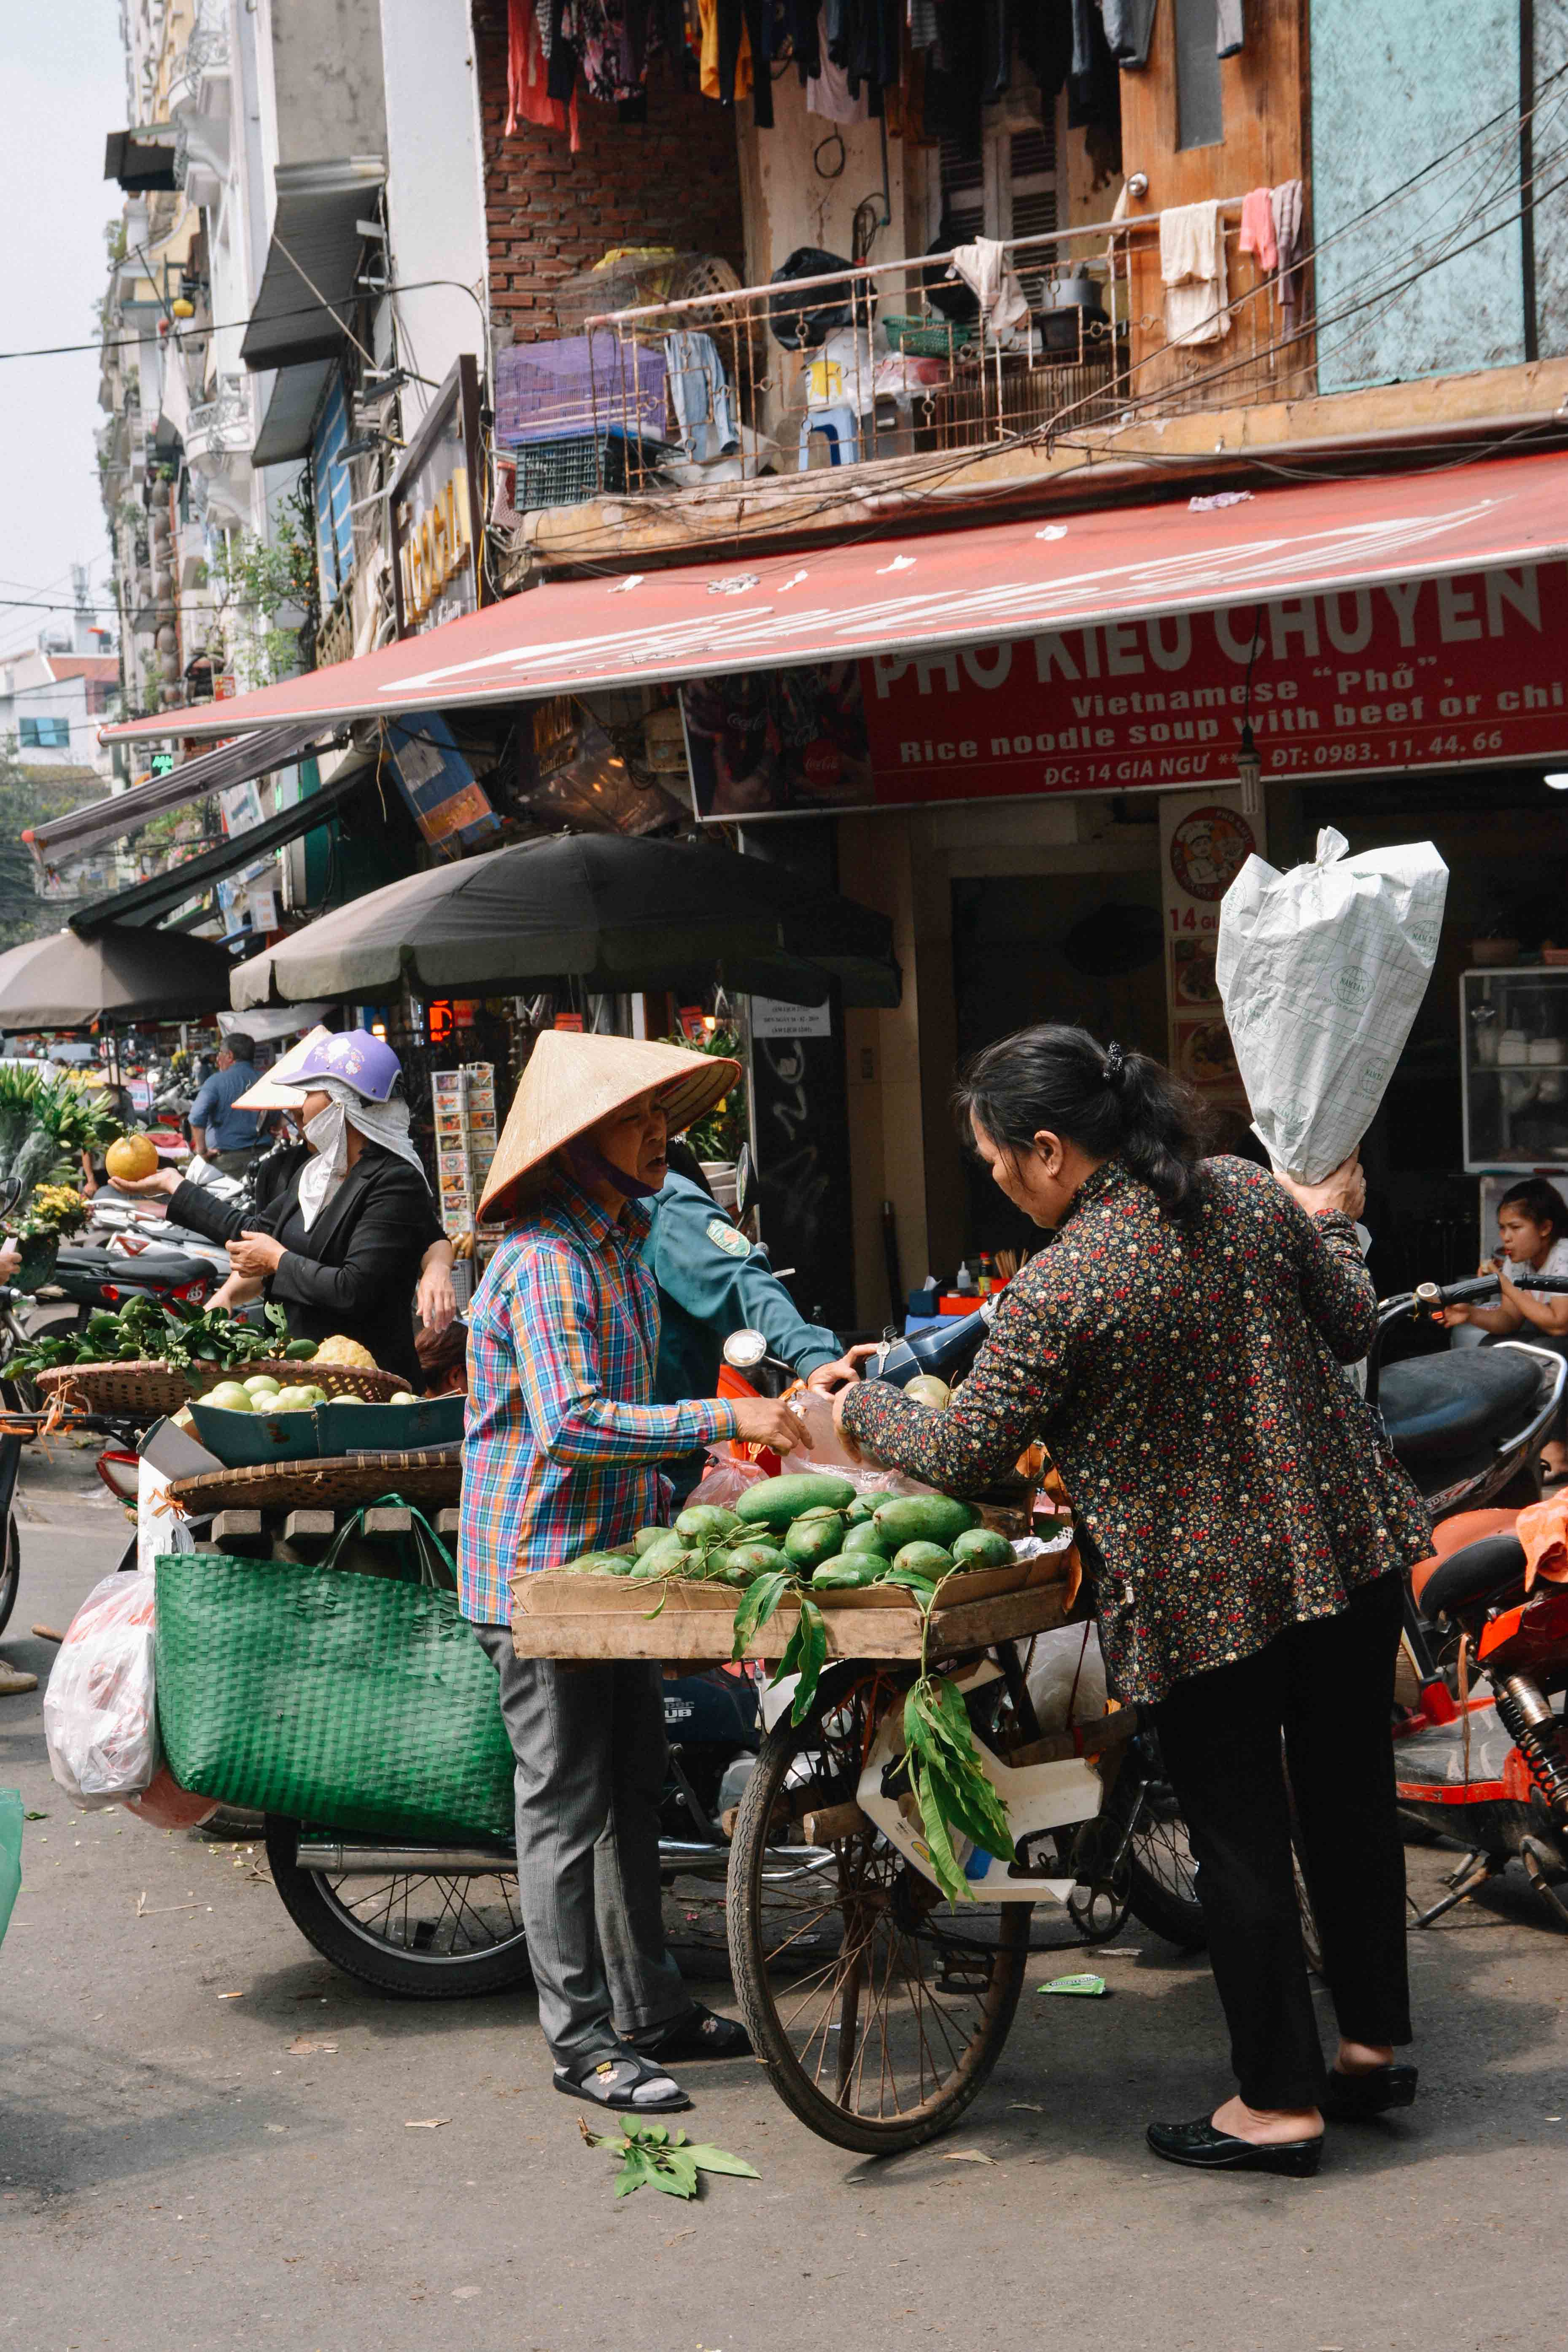 le quartier des 36 corporations à Hanoi, au Vietnam